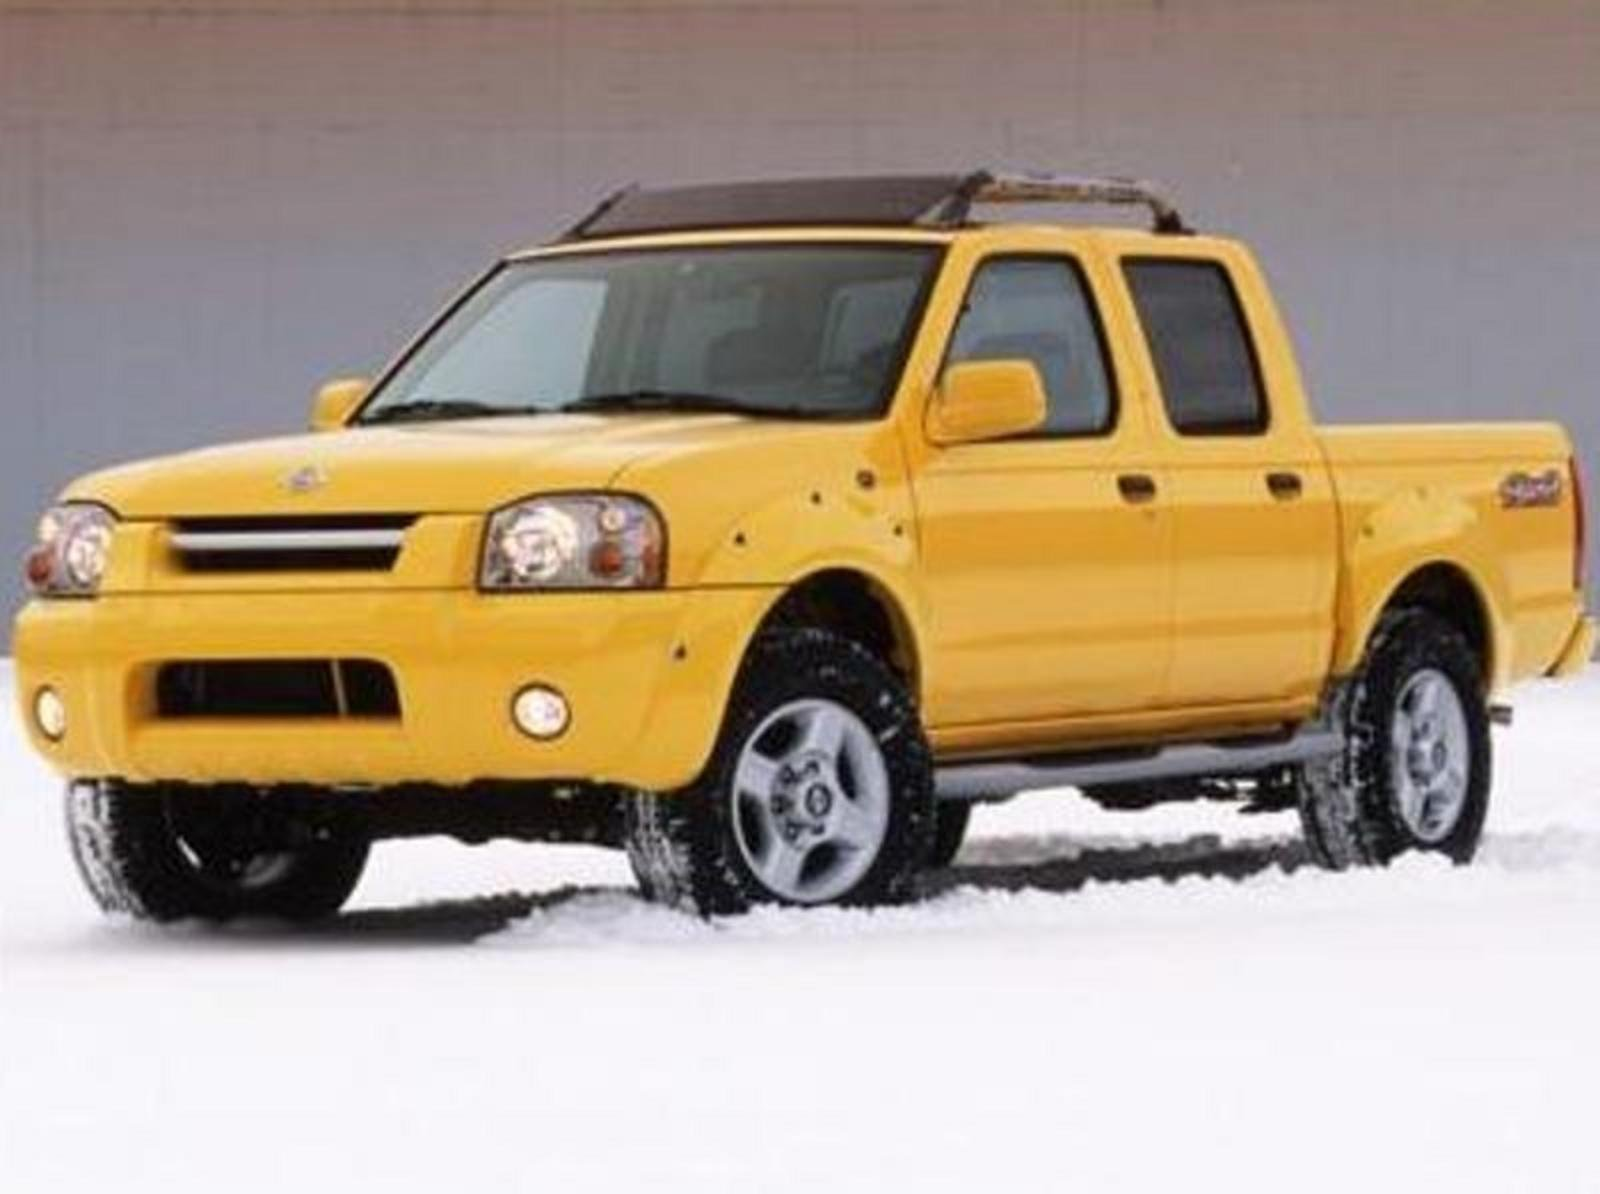 2001 - 2004 Nissan Frontier Review - Top Speed